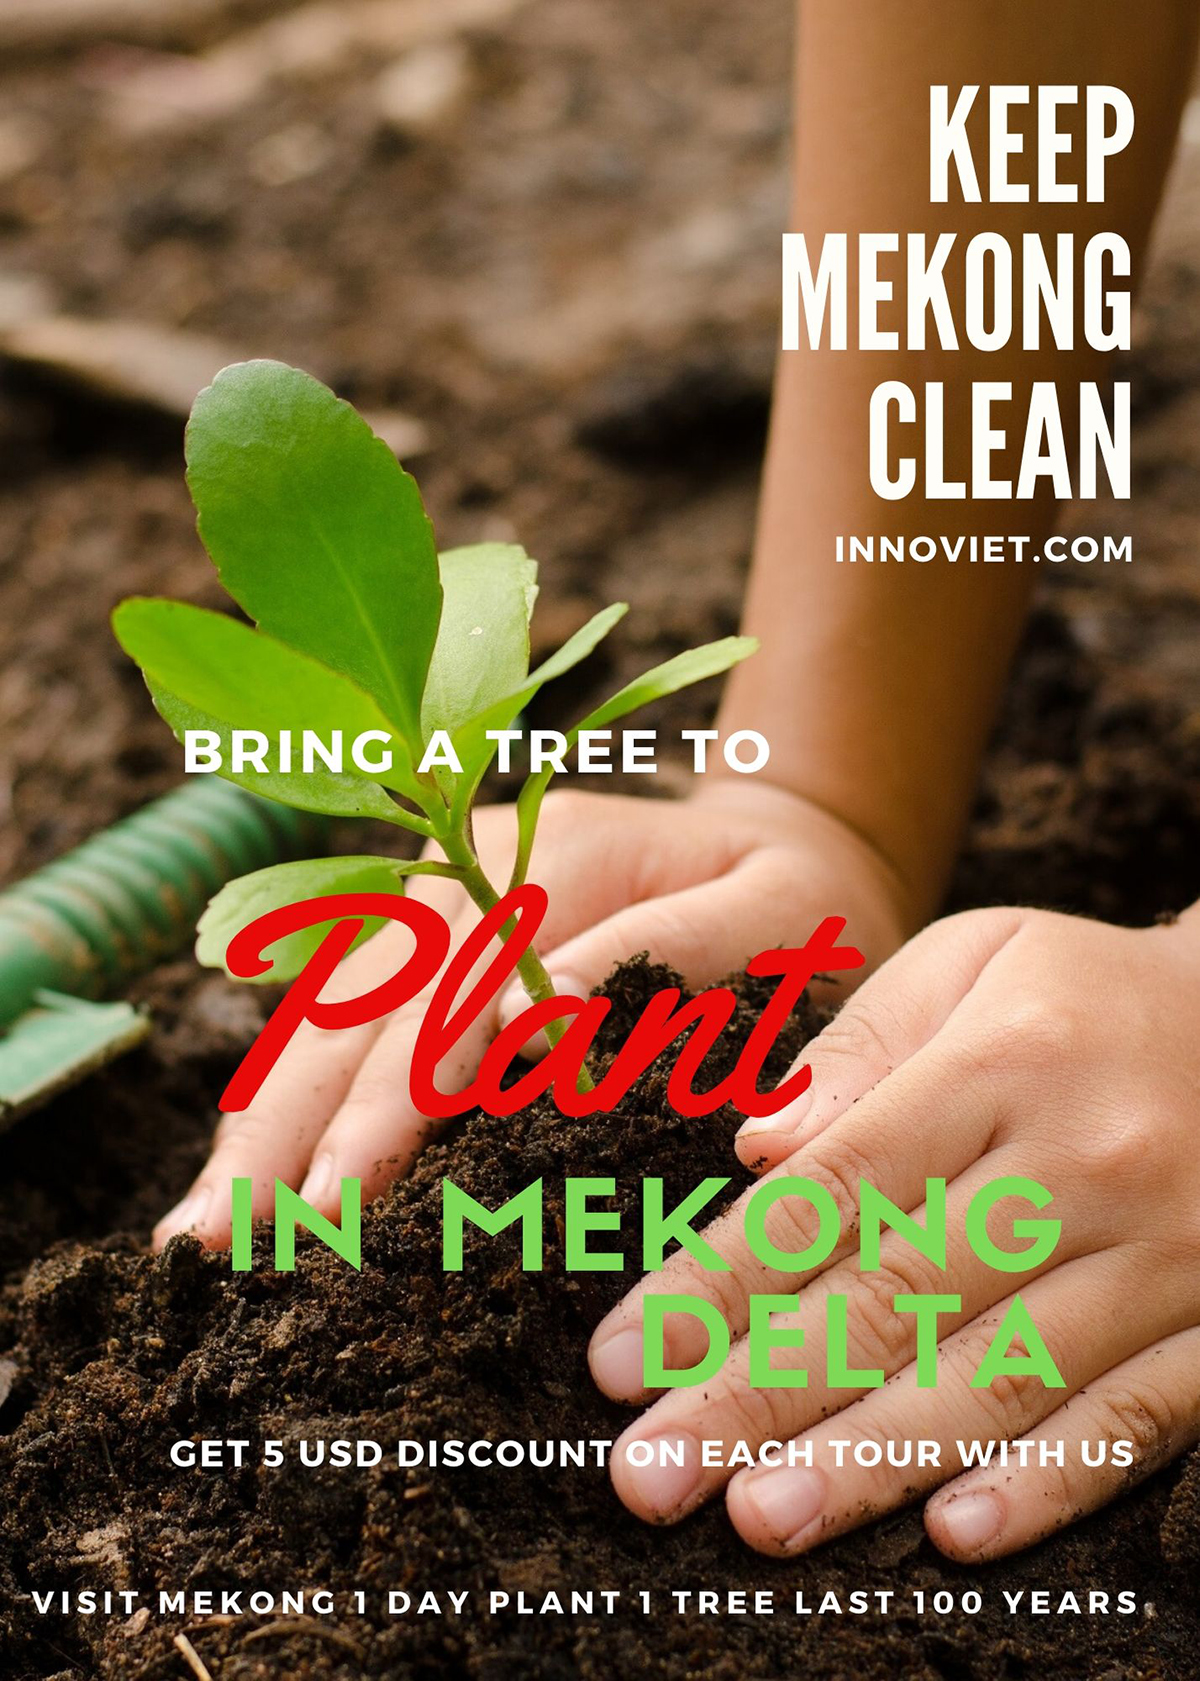 The meaning of Planting a tree in Mekong Delta